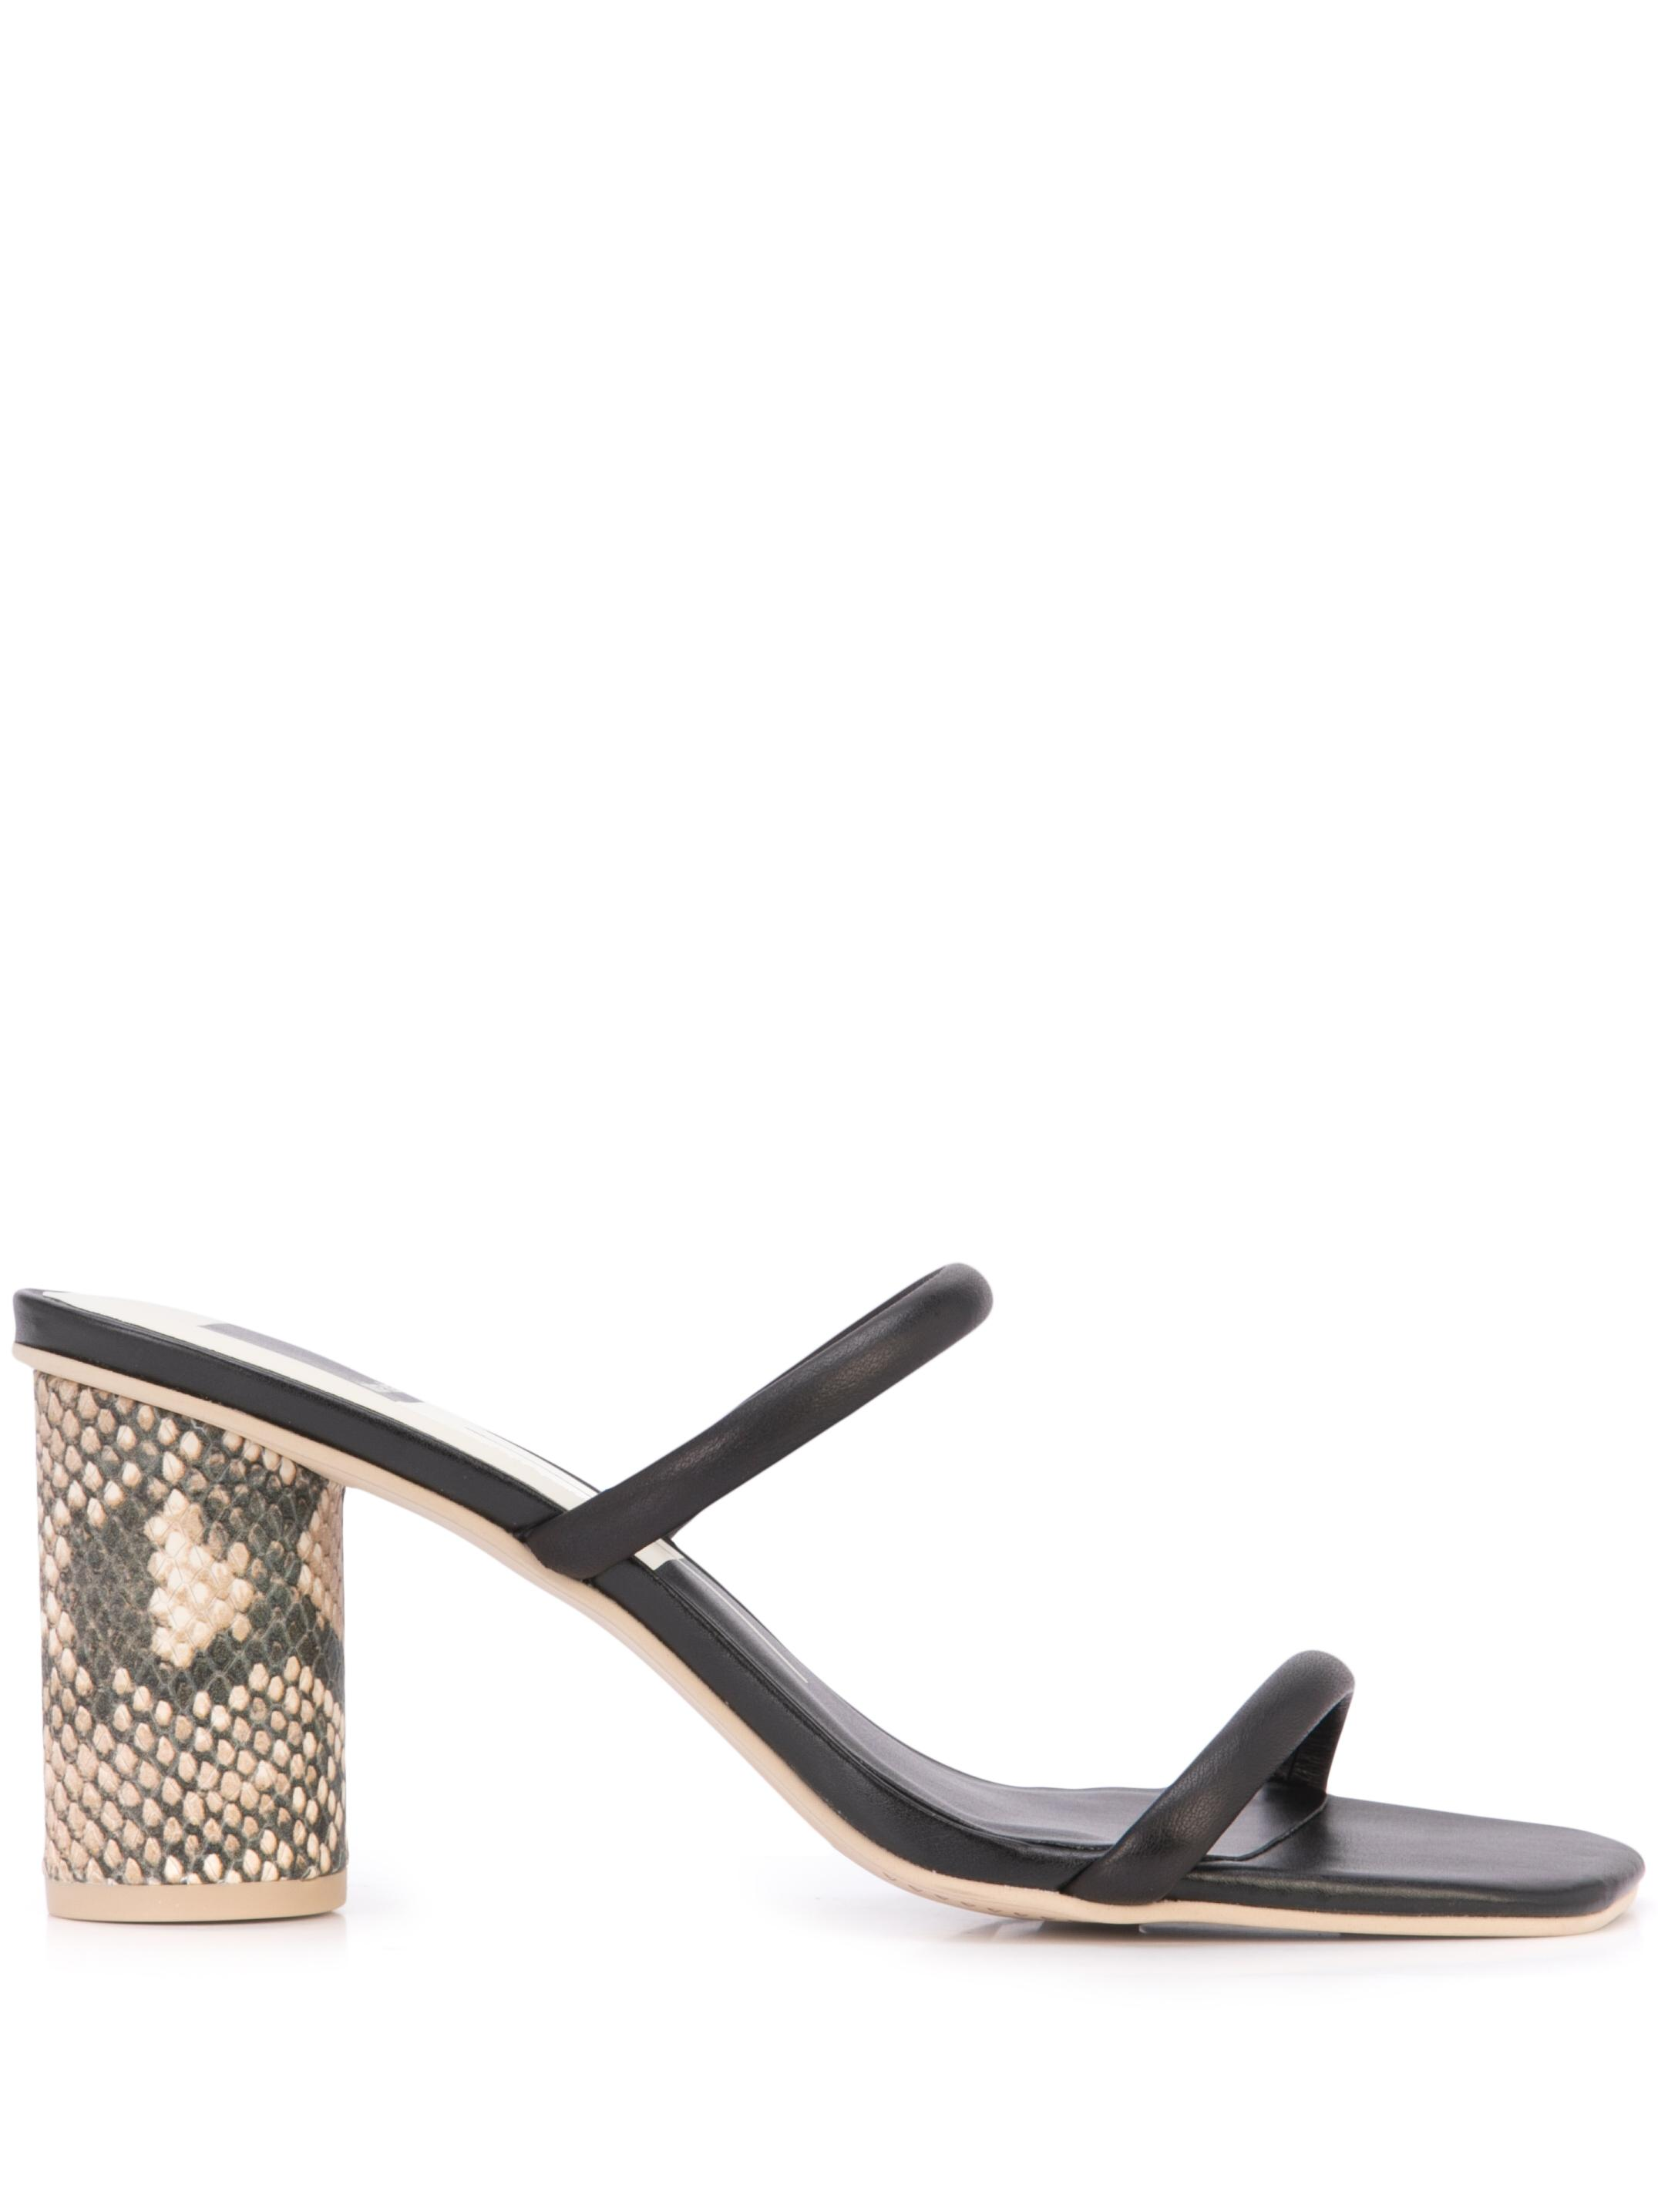 2-Strap Block Heel Leather Sandal